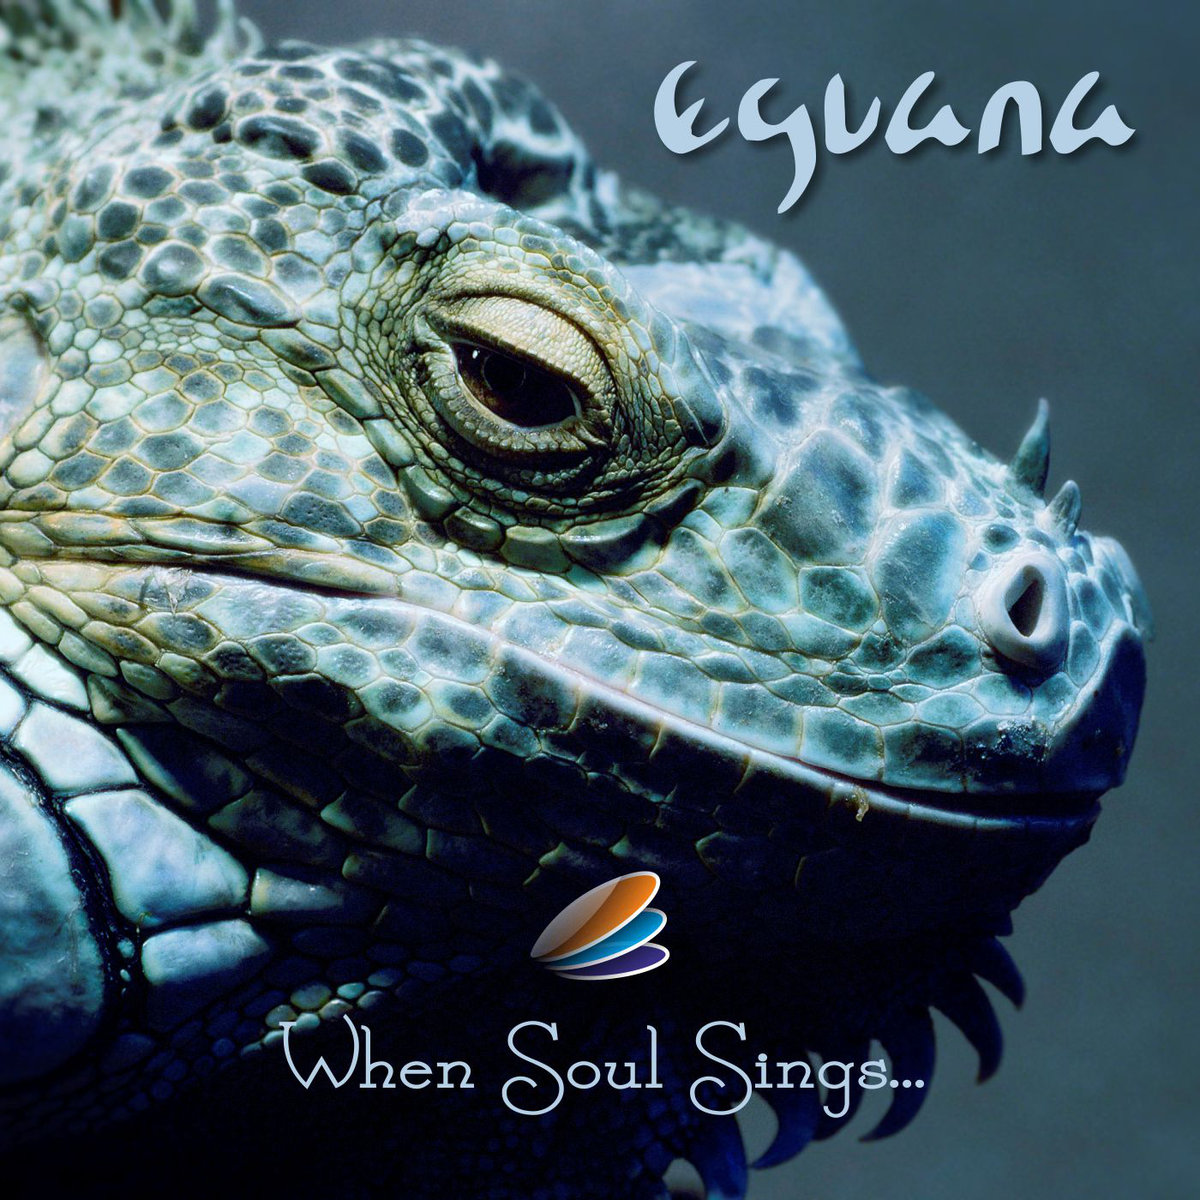 Eguana - When Soul Sings...